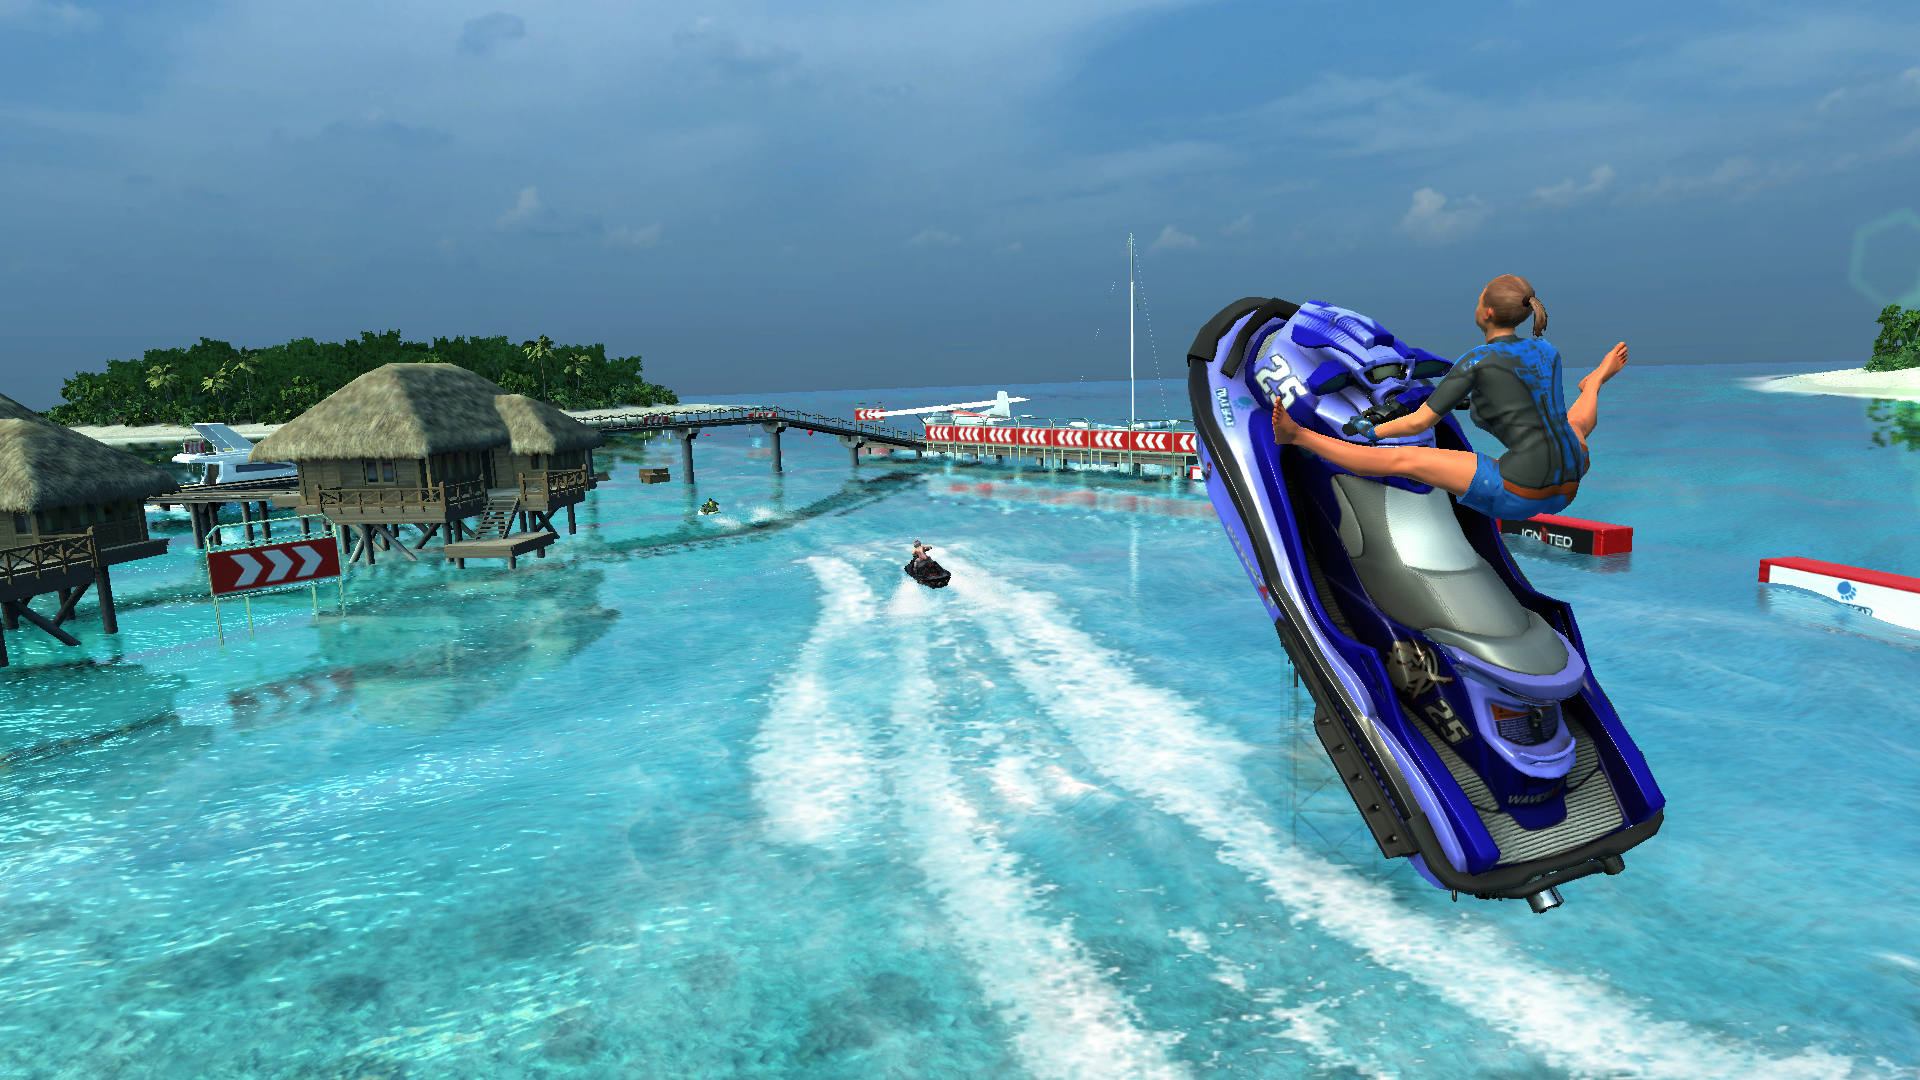 aqua-moto-racing-utopia-ps4-review-screenshot-2